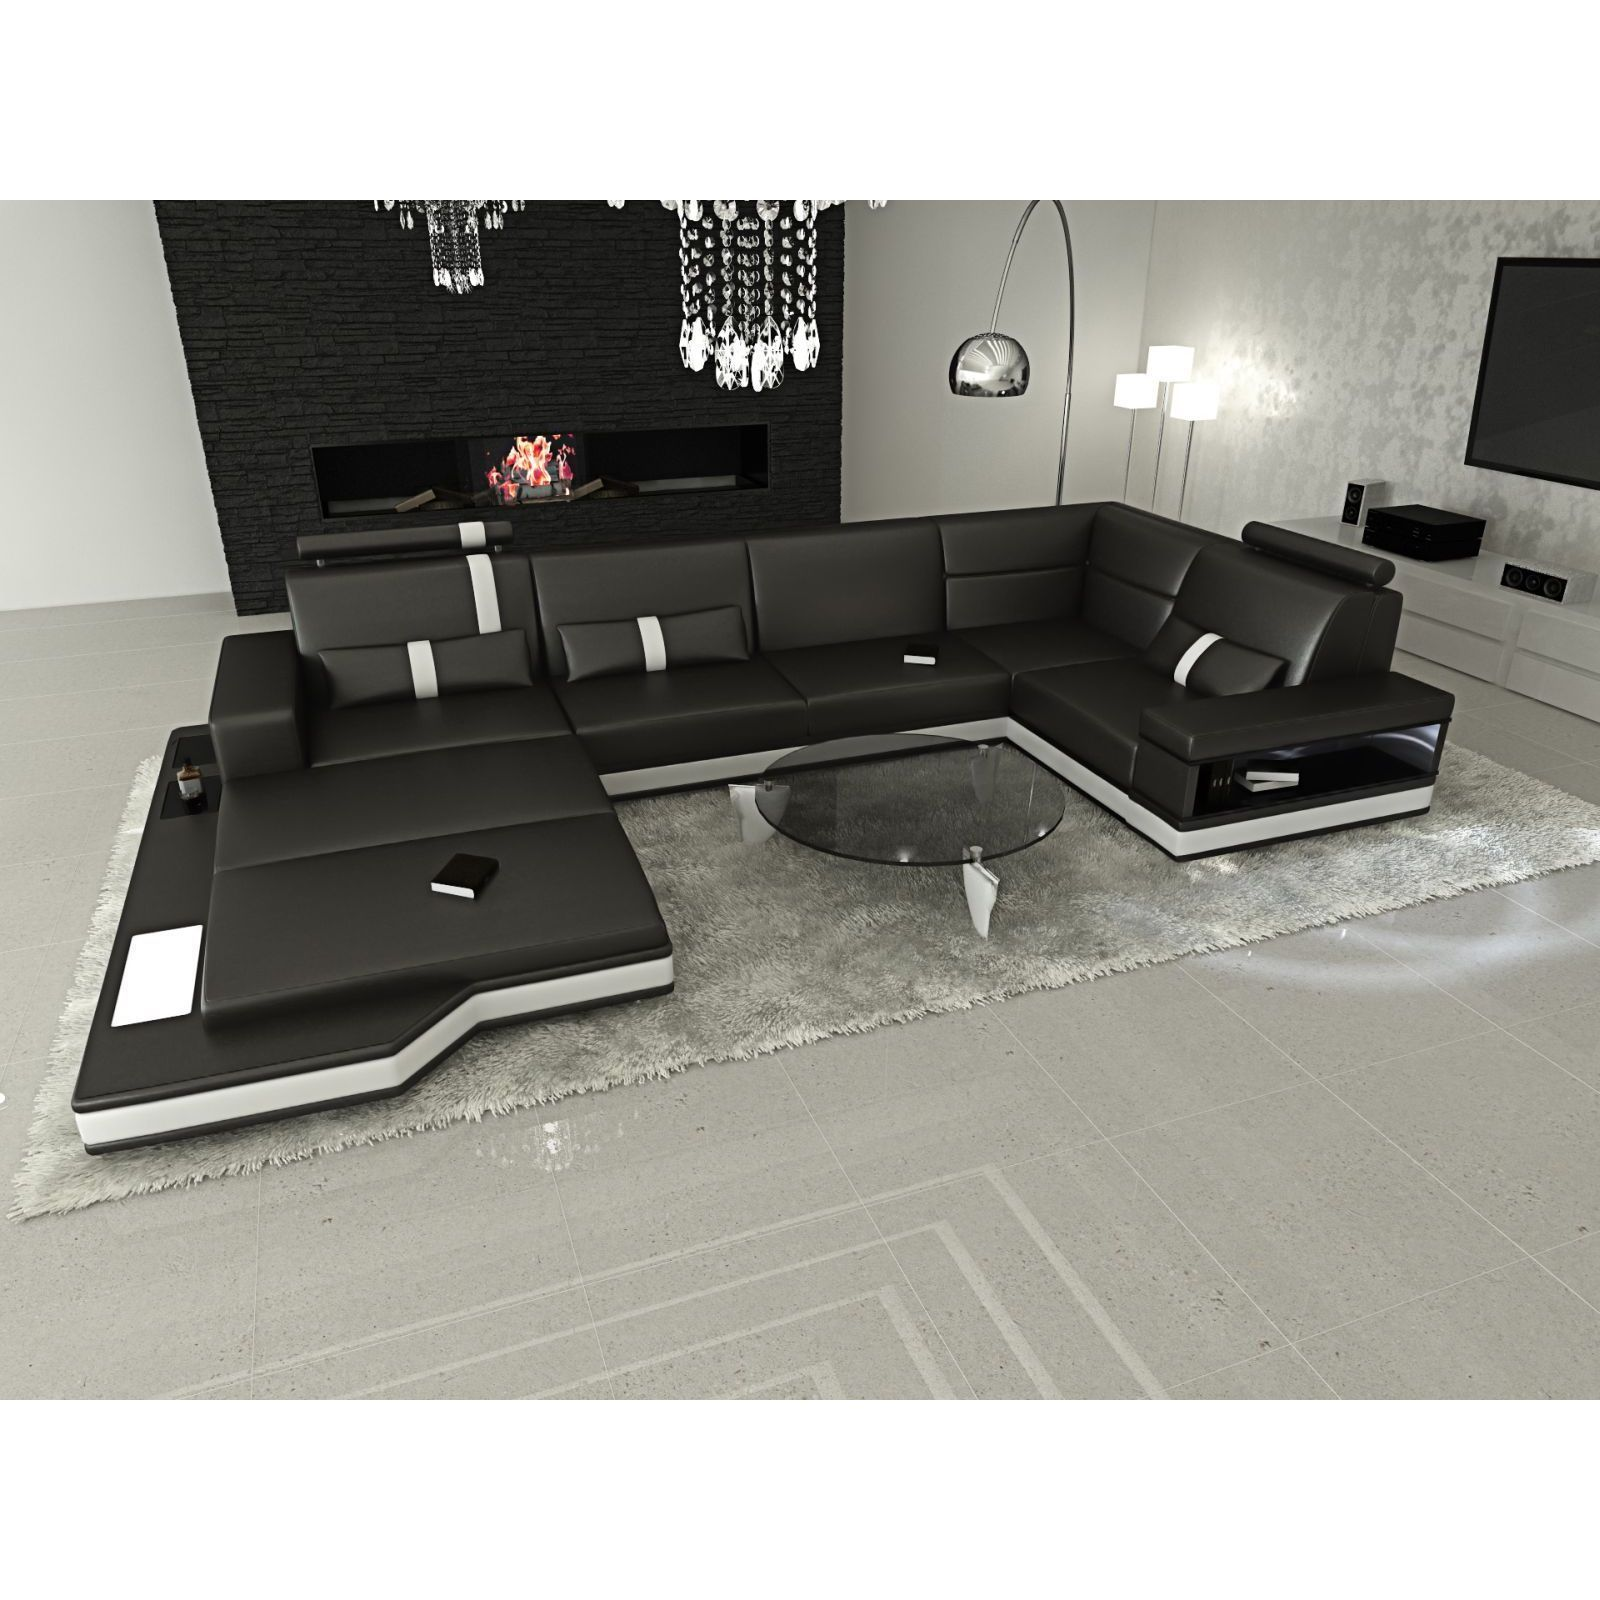 Design Modern Los Angeles Black U Shaped Sectional Sofa